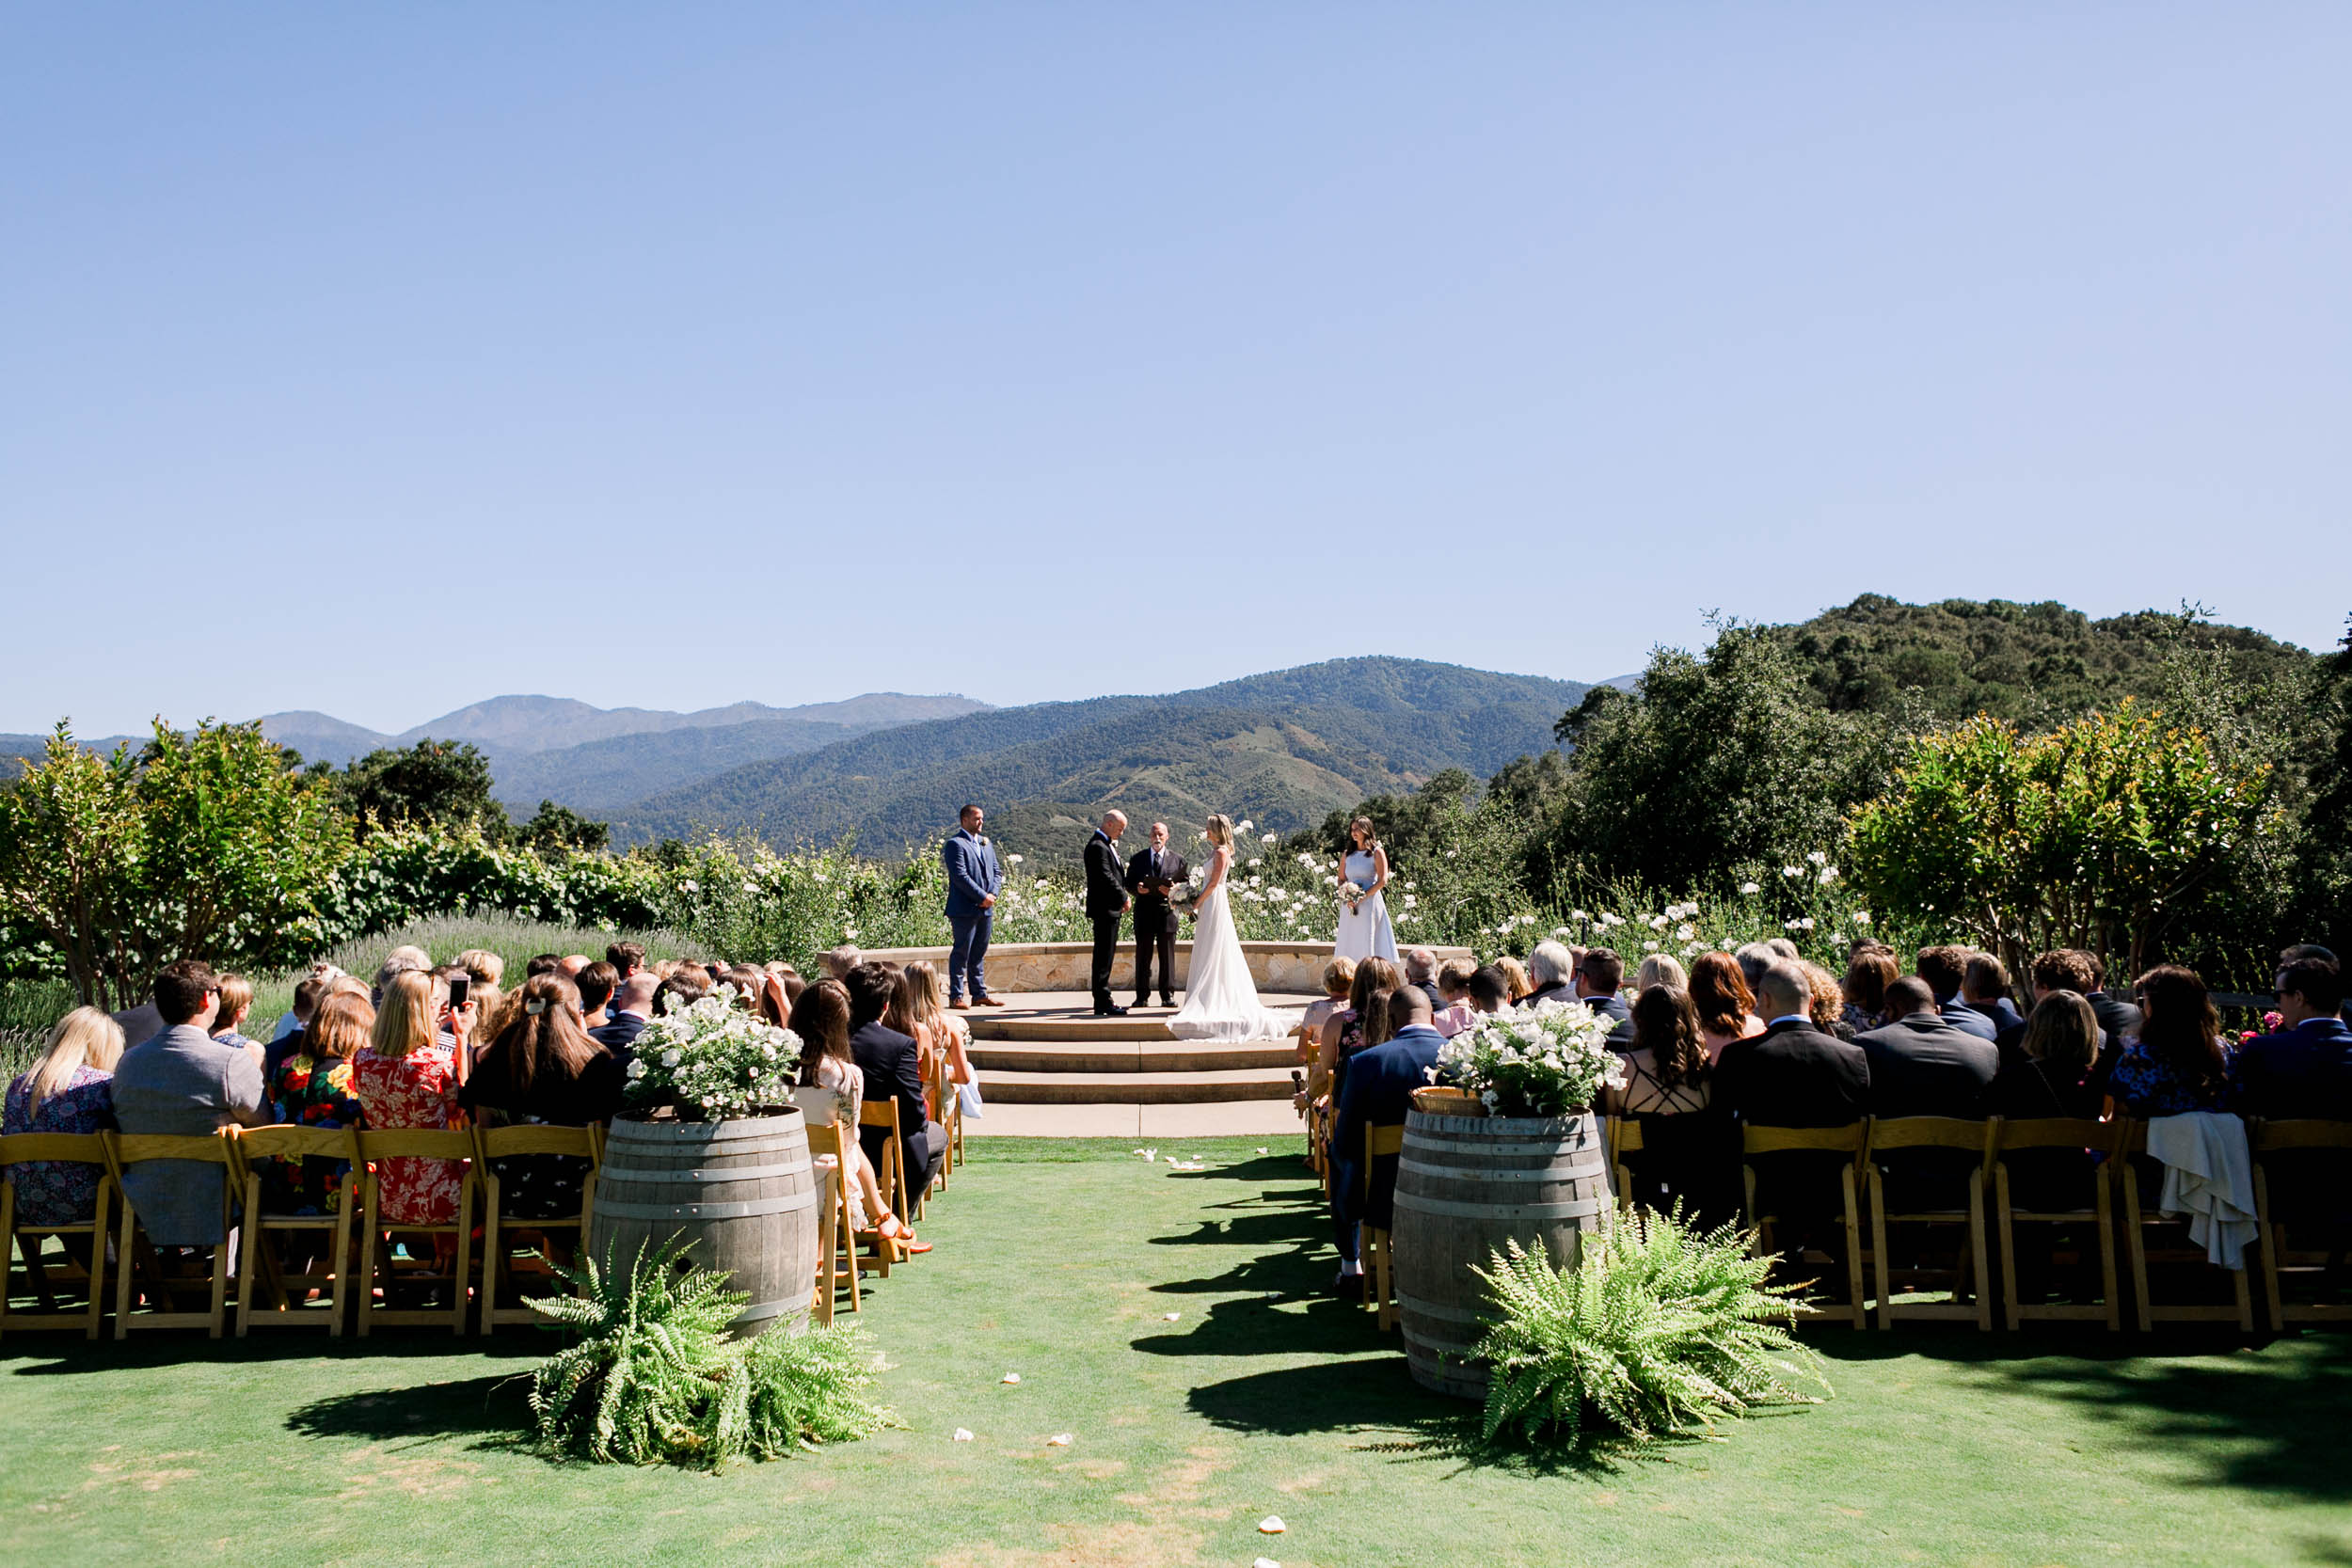 C+D_Holman Ranch Wedding_Carmel Valley_Buena Lane Photography_060619_ER248.jpg